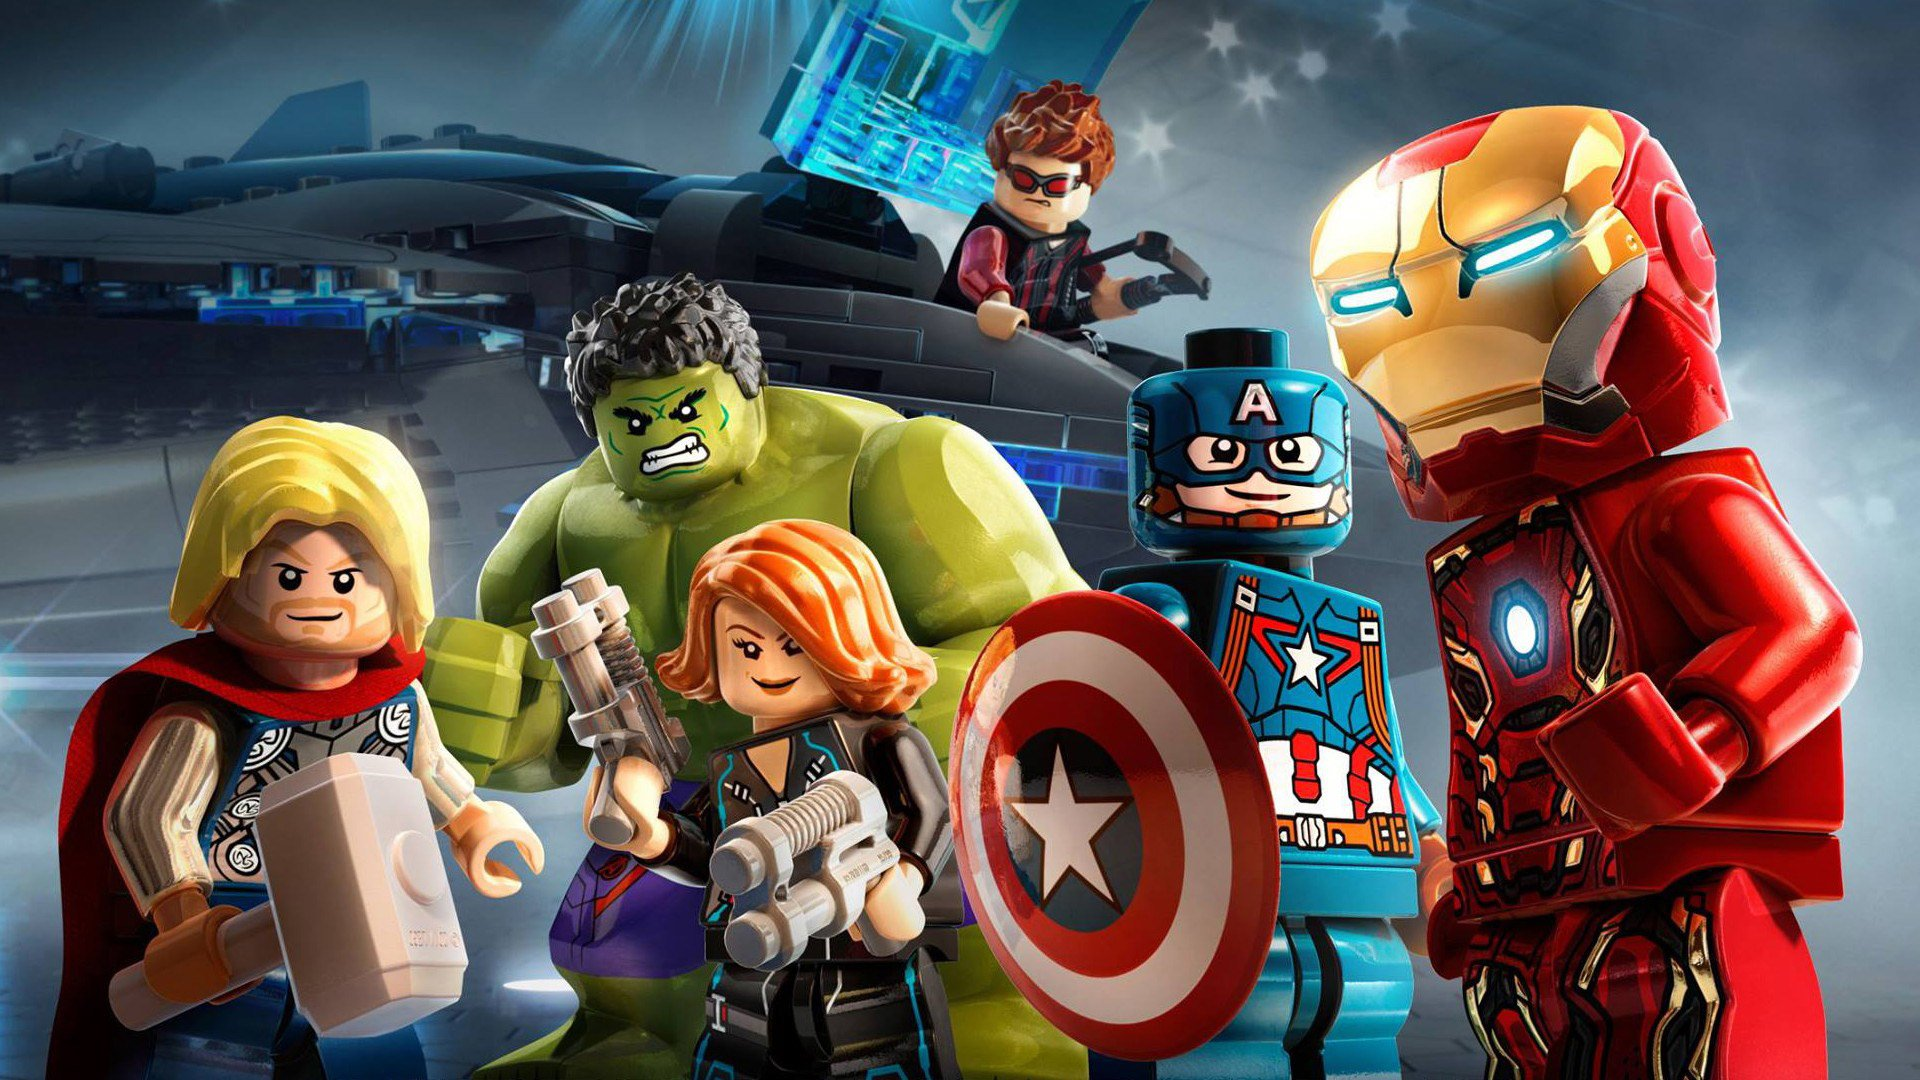 Cool Marvel Wallpapers Hd Avengers Lego